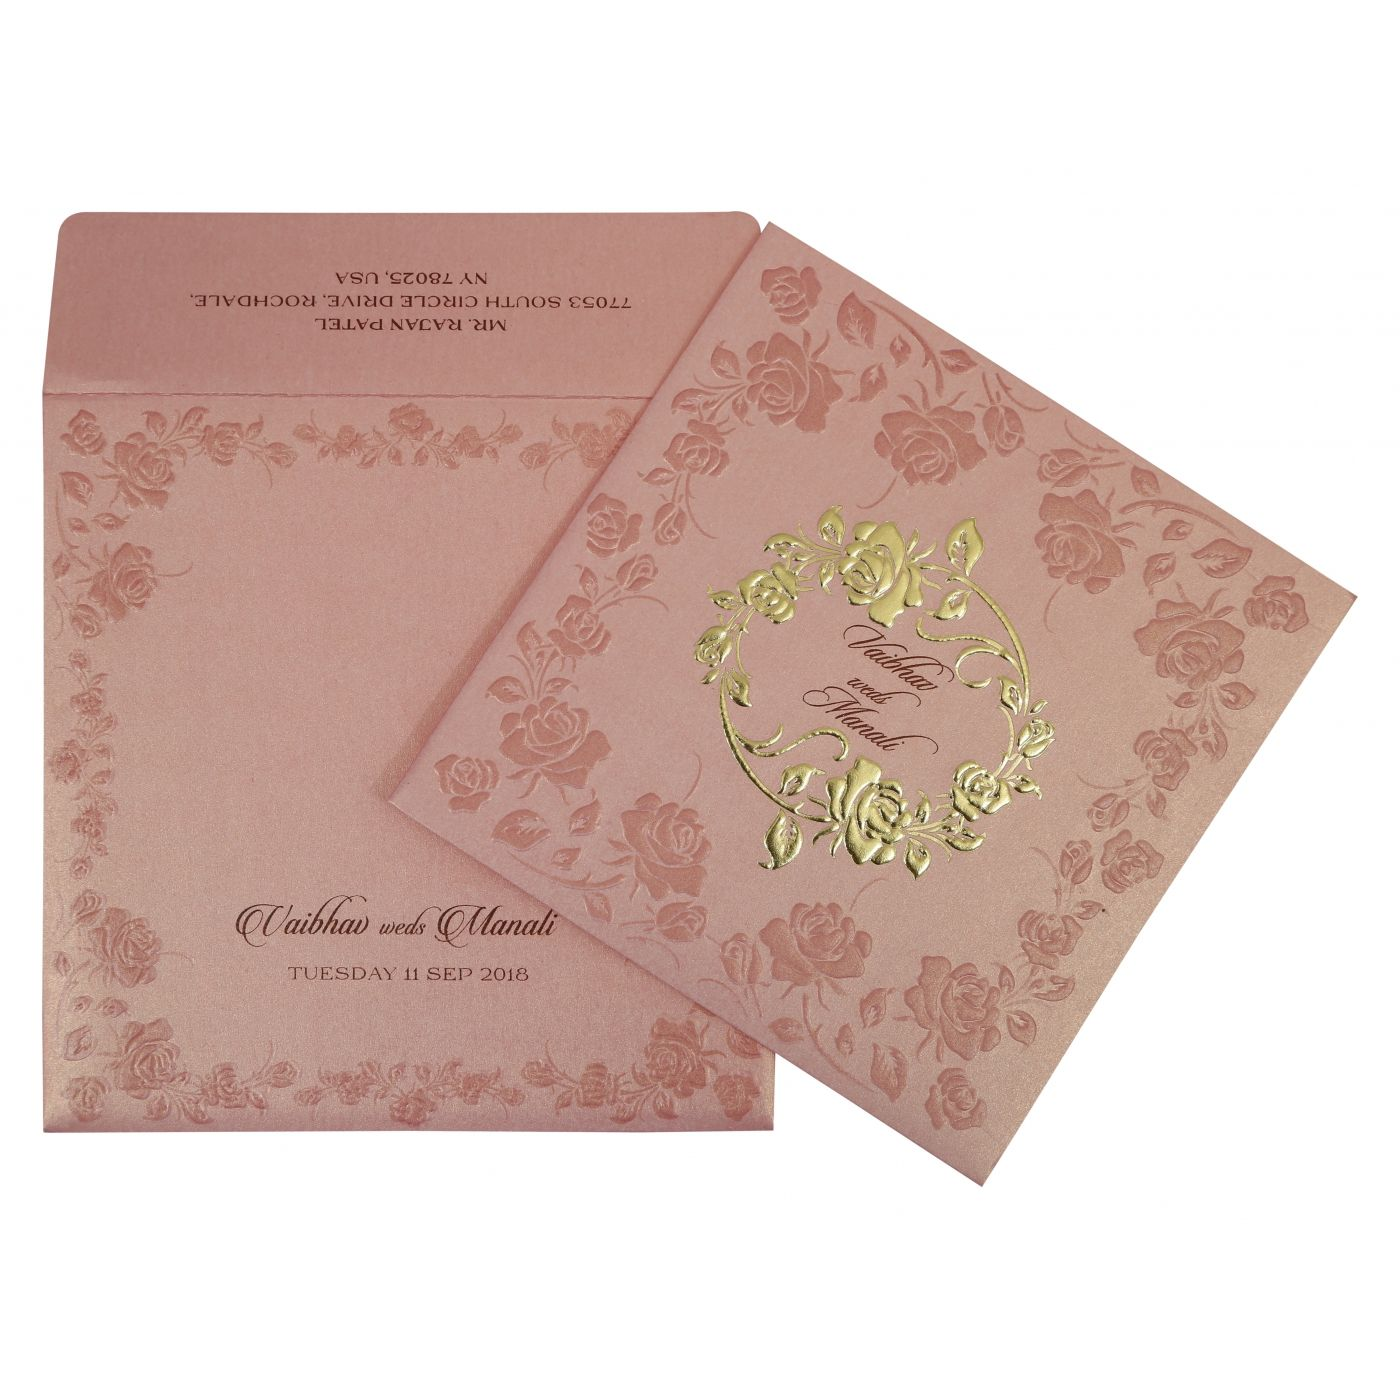 BABY PINK SHIMMERY FLORAL THEMED - FOIL STAMPED WEDDING INVITATION : CW-1787 - IndianWeddingCards